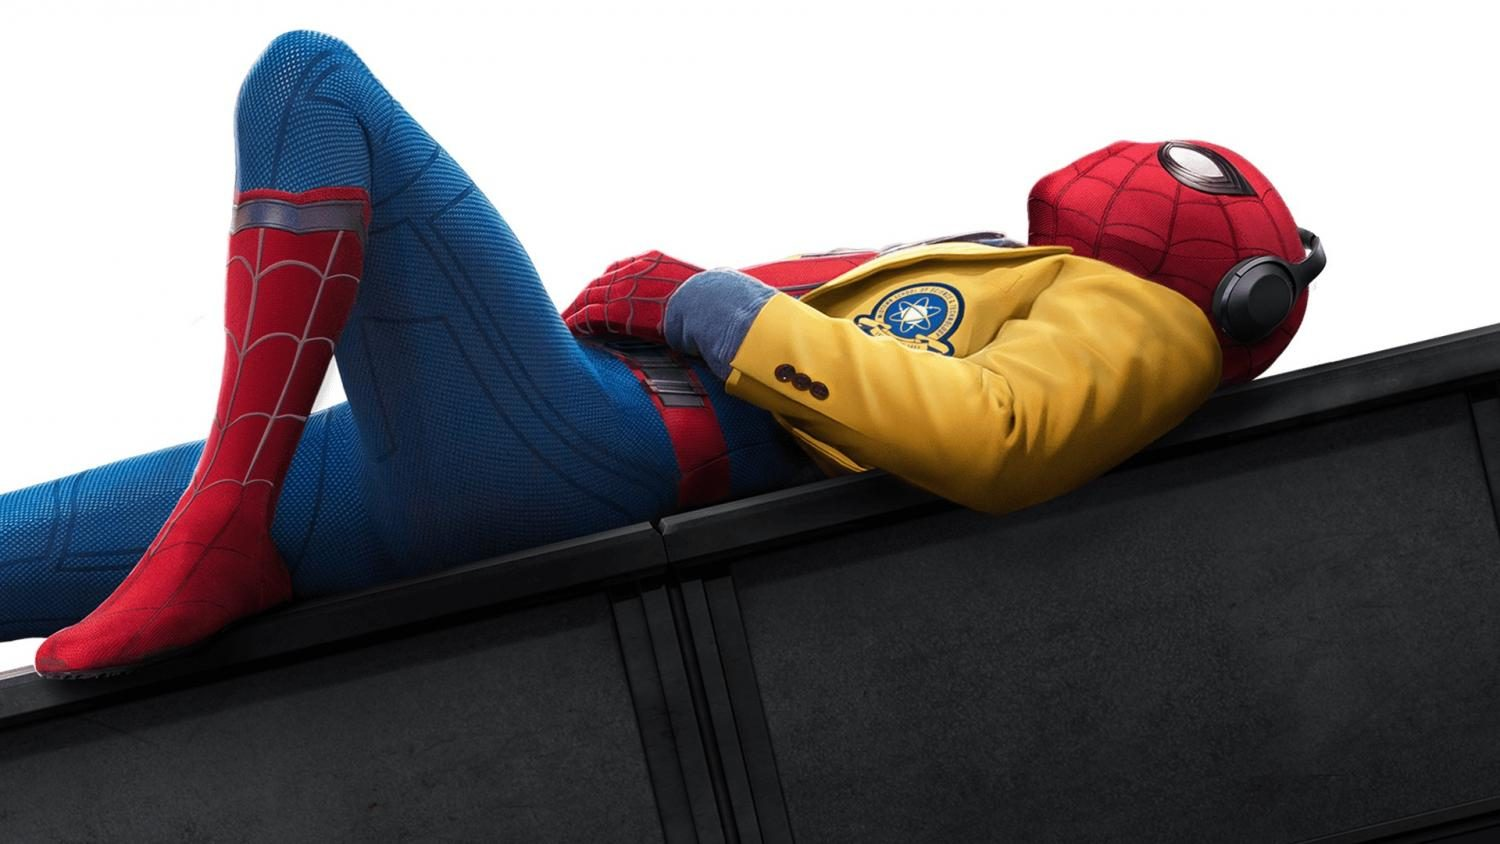 Spider-Man swings into theaters, topping box office